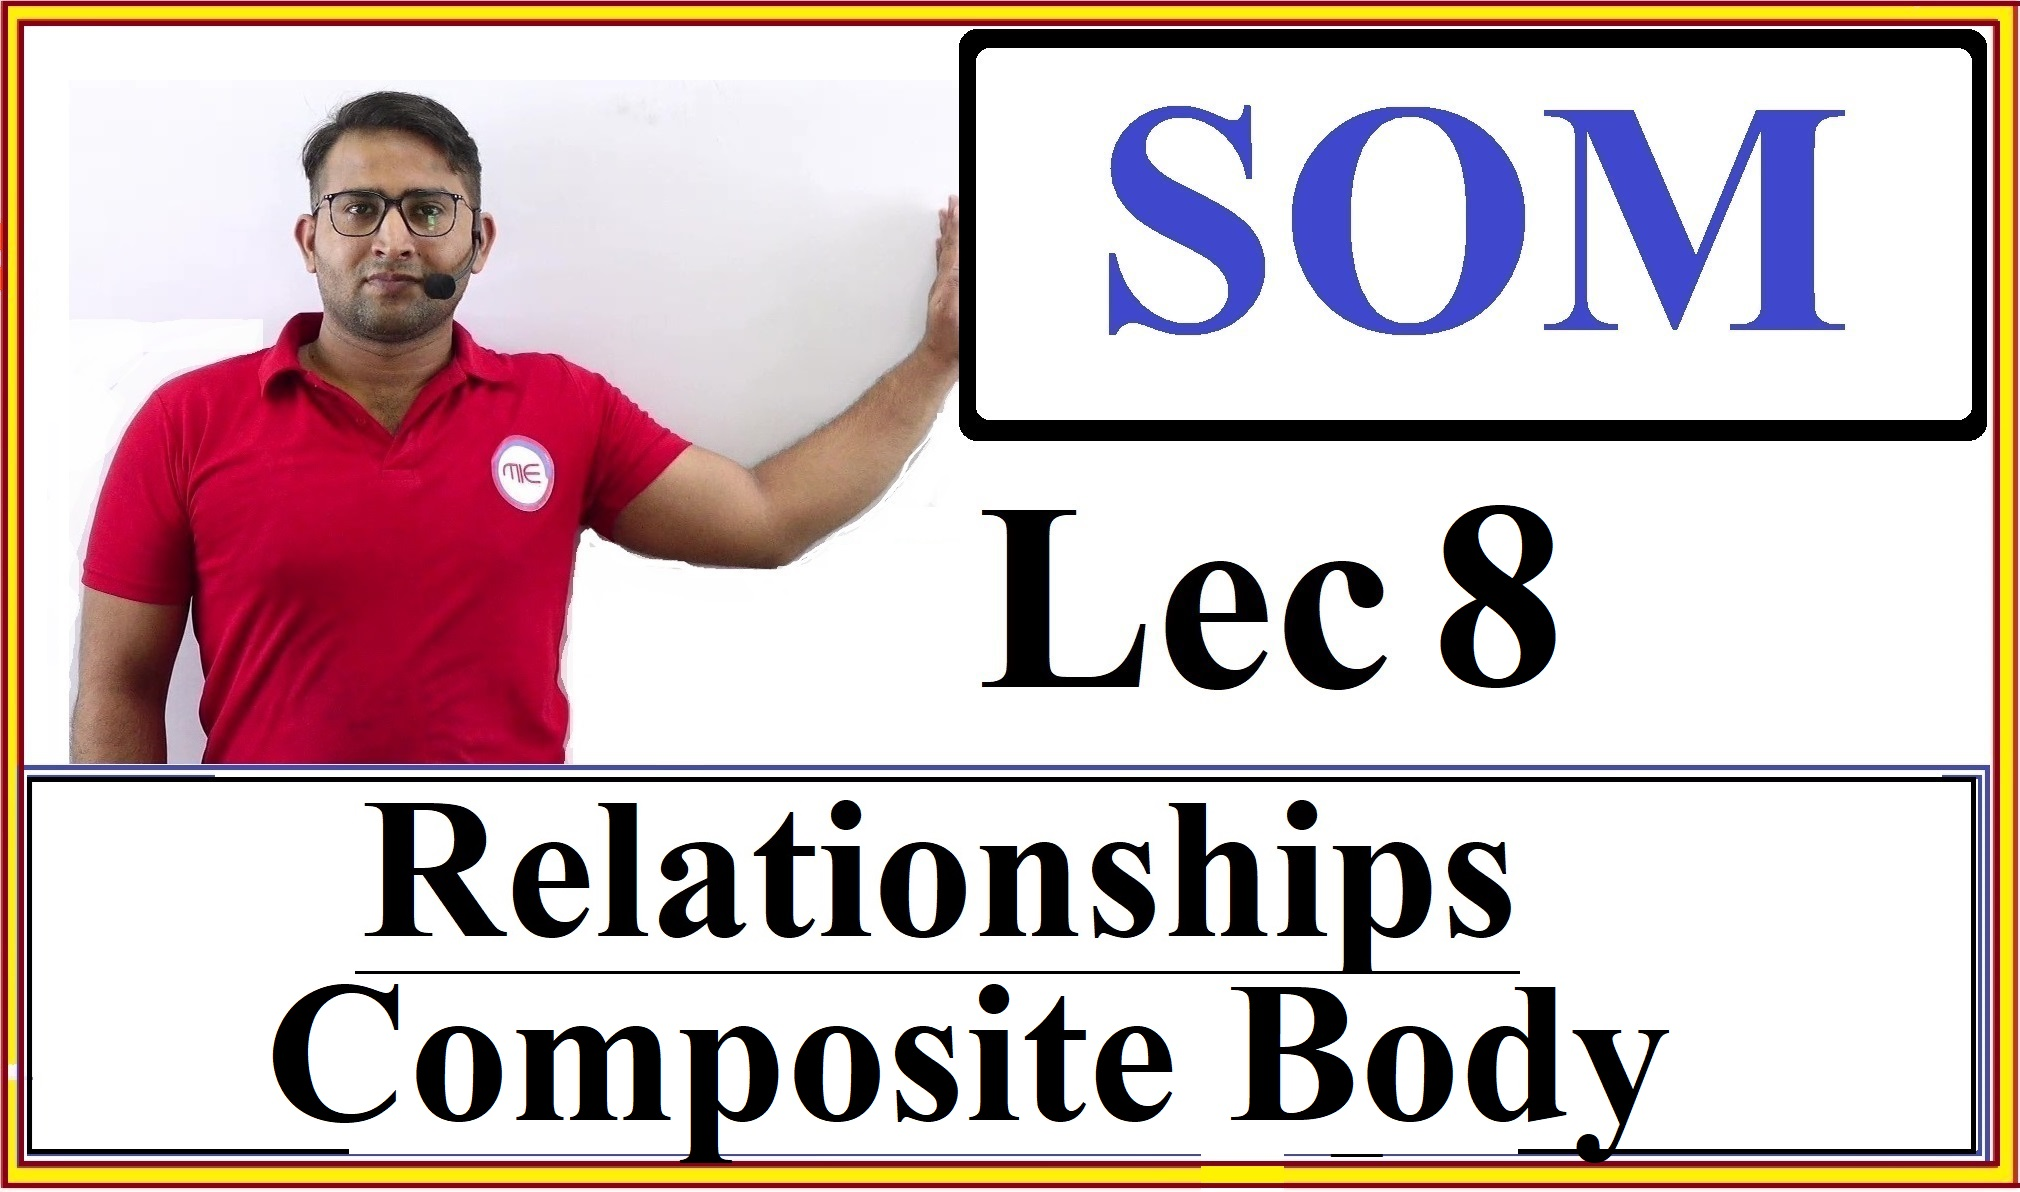 Lec 8 Relations and Composite Body